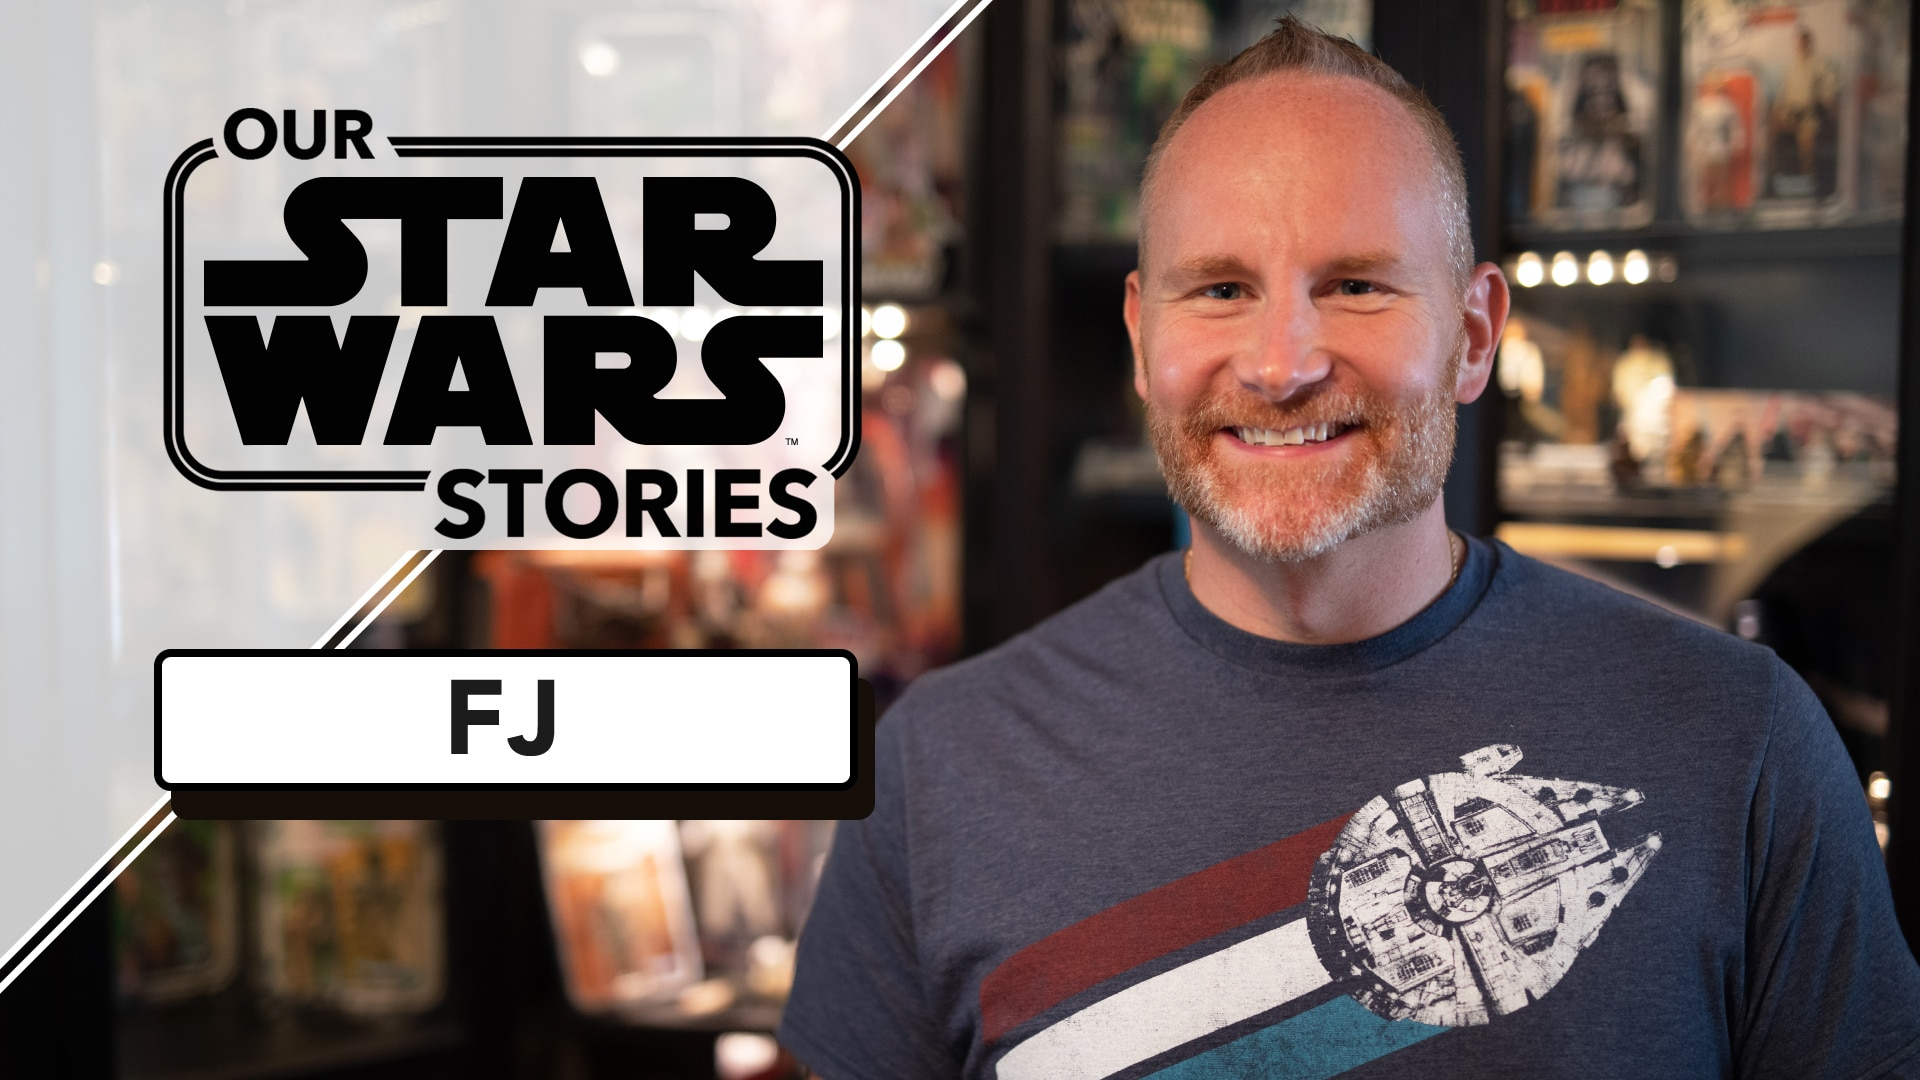 How Star Wars Showed FJ That It's OK to Be Yourself - Our Star Wars Stories